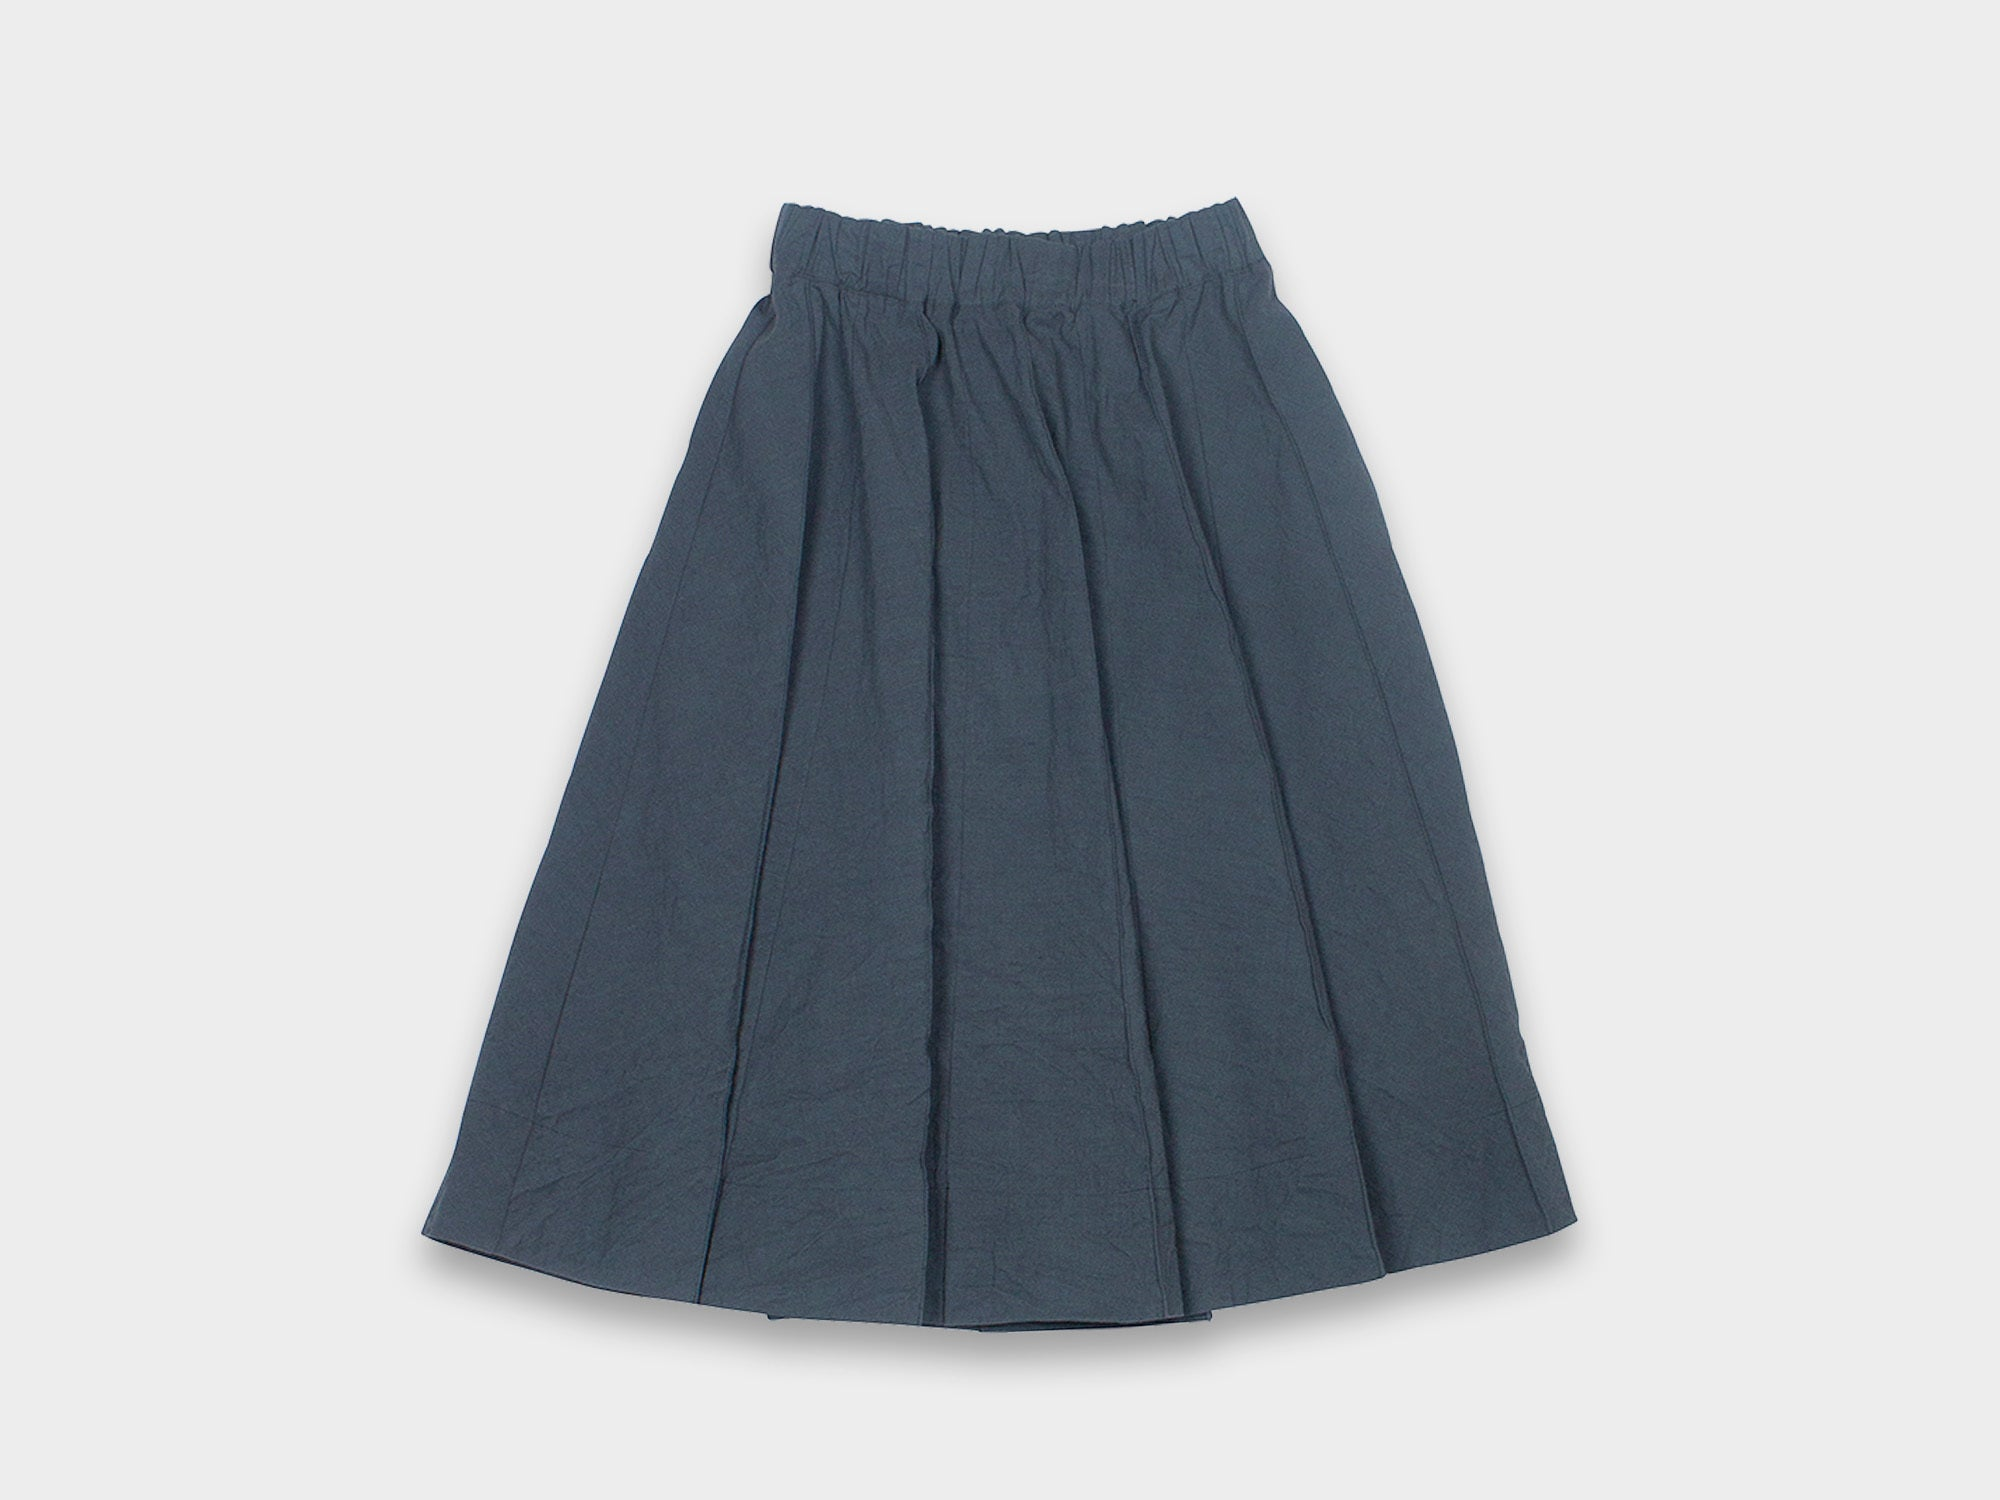 W-R8P8 [SKIRT] DAWN GREY